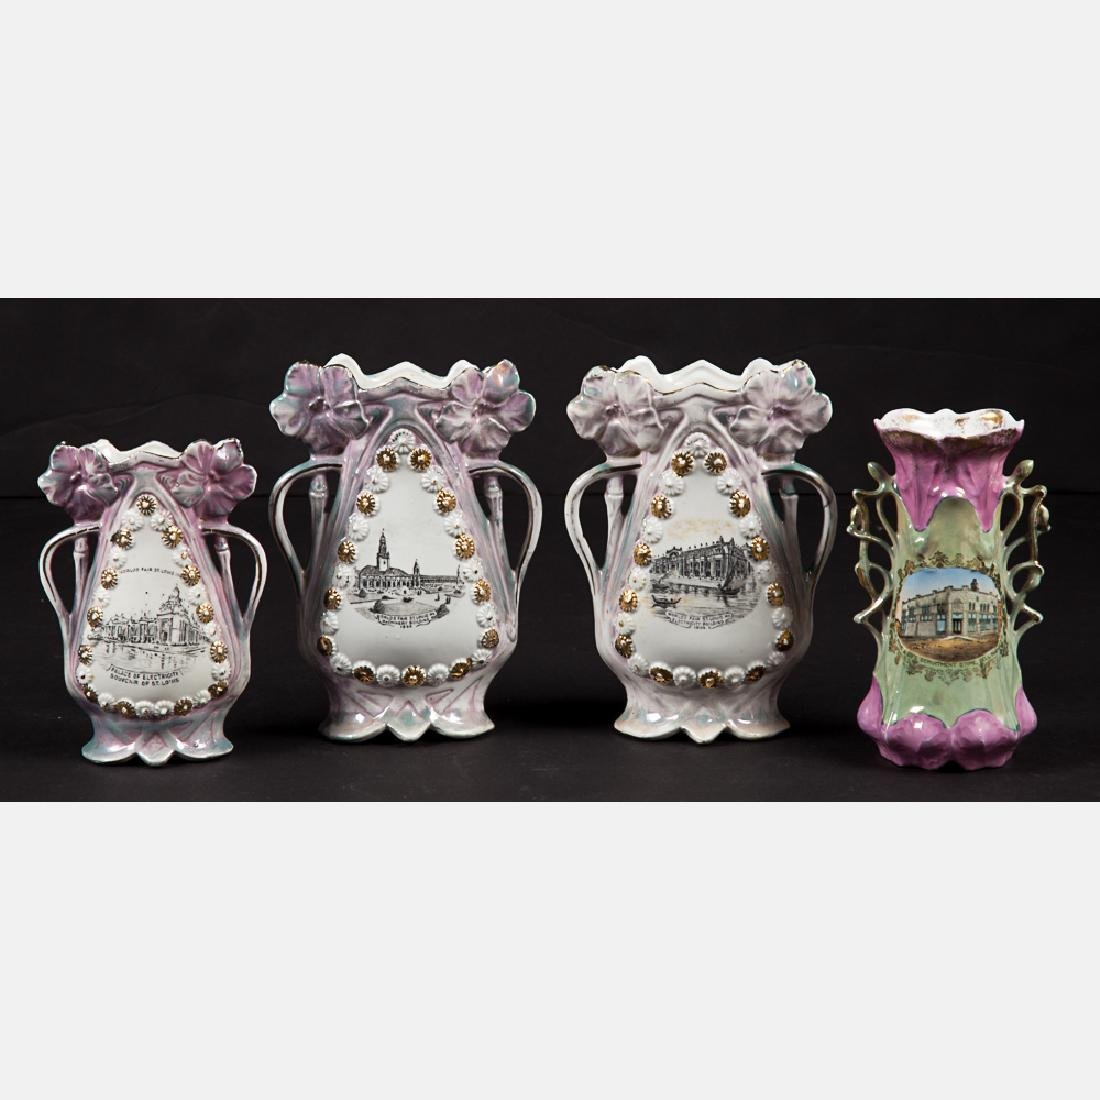 A Group of Four Porcelain Lustreware Vases by Various